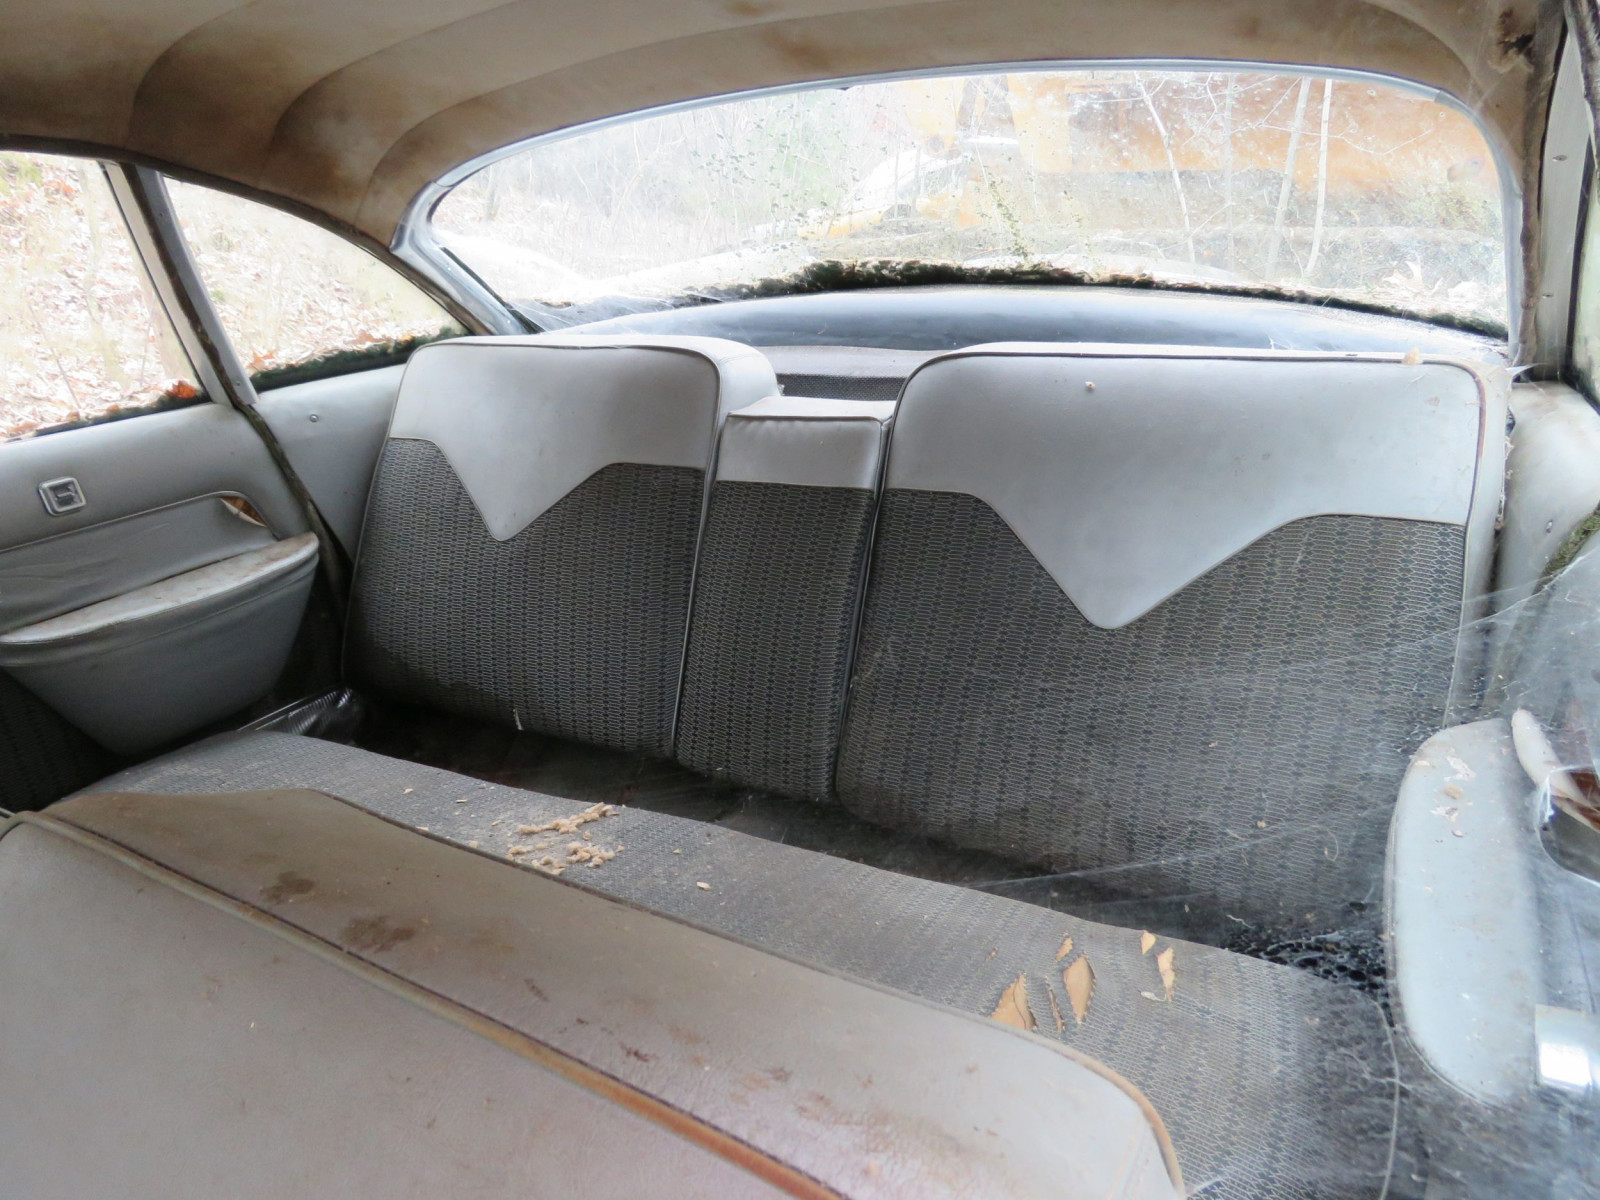 1950's Imperial 4dr Sedan for Project or Parts - Image 6